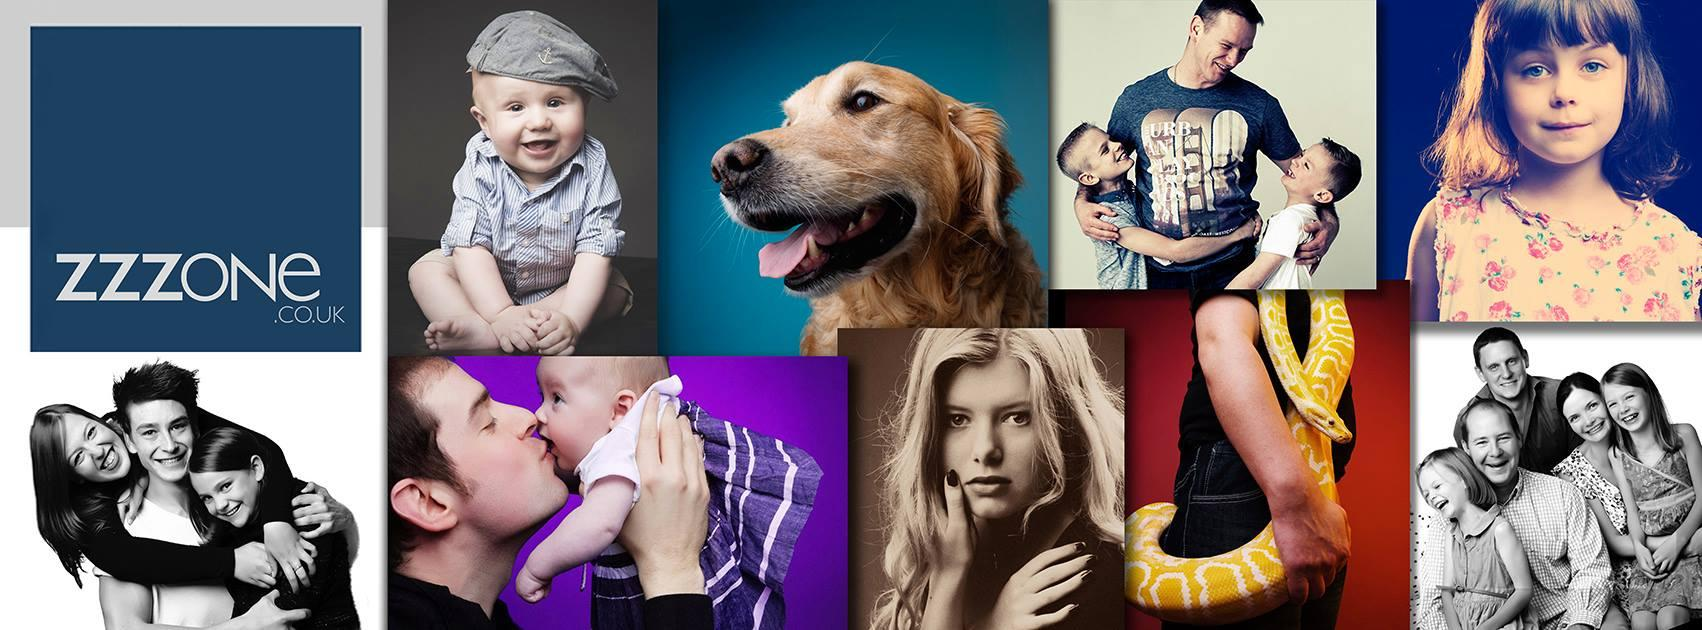 Zzzone Photography Studio – Family Portrait Photographer